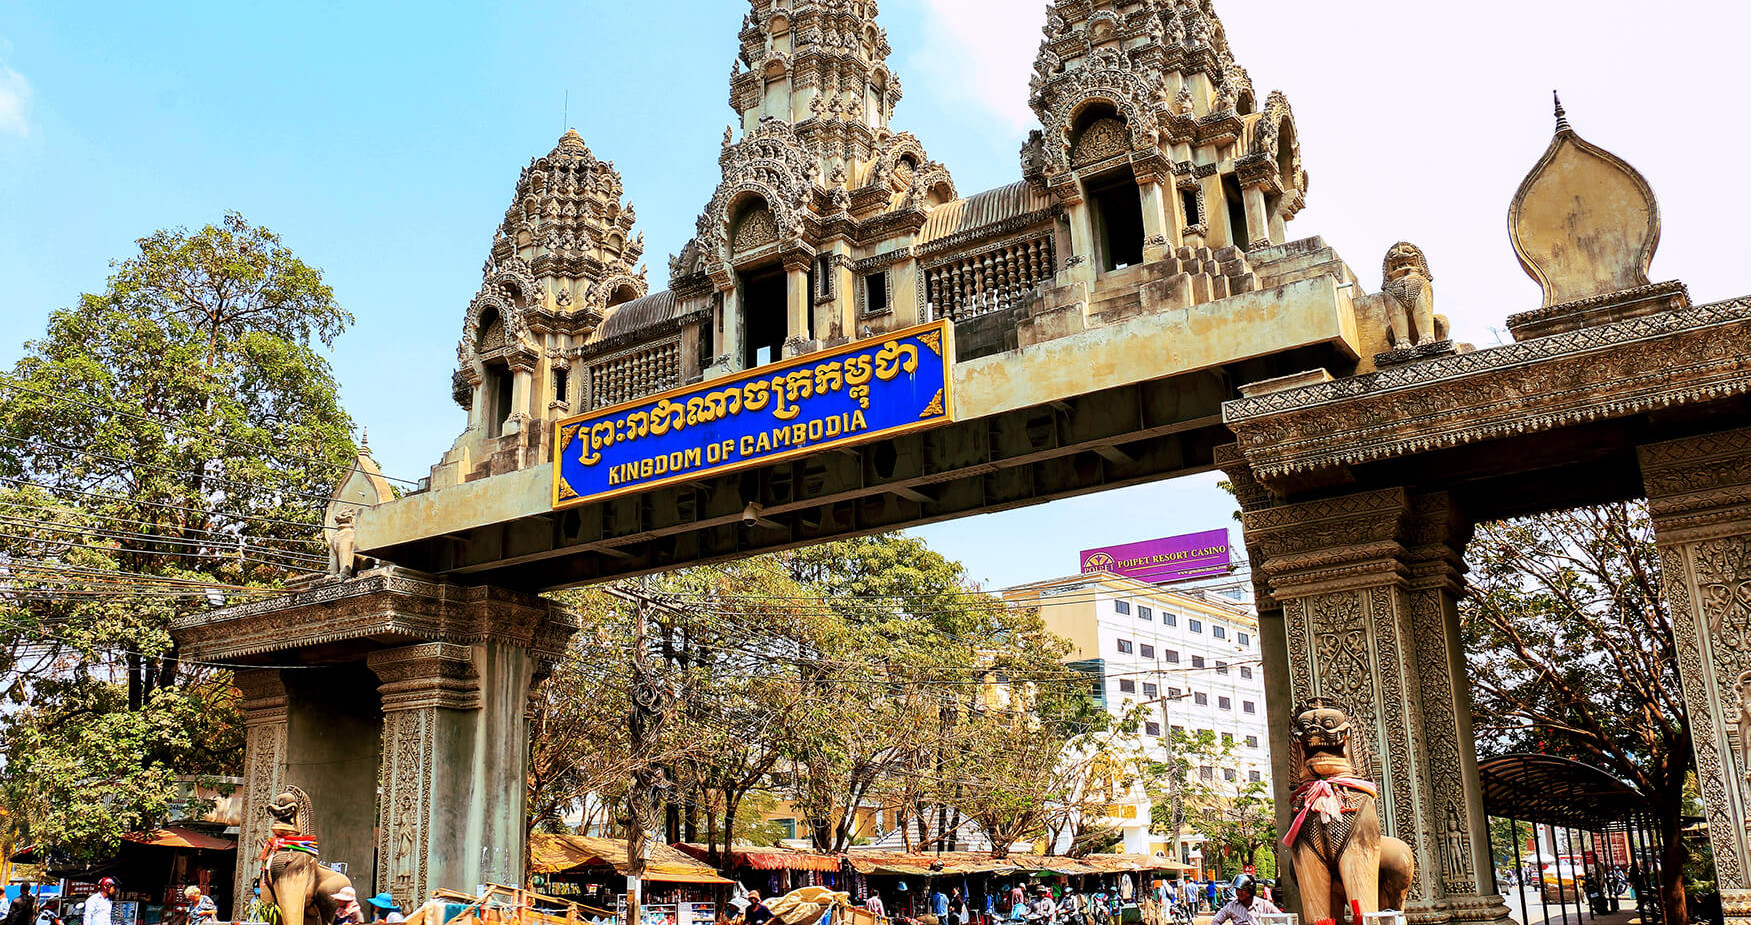 Entry to the Kingdom of Cambodia.jpg